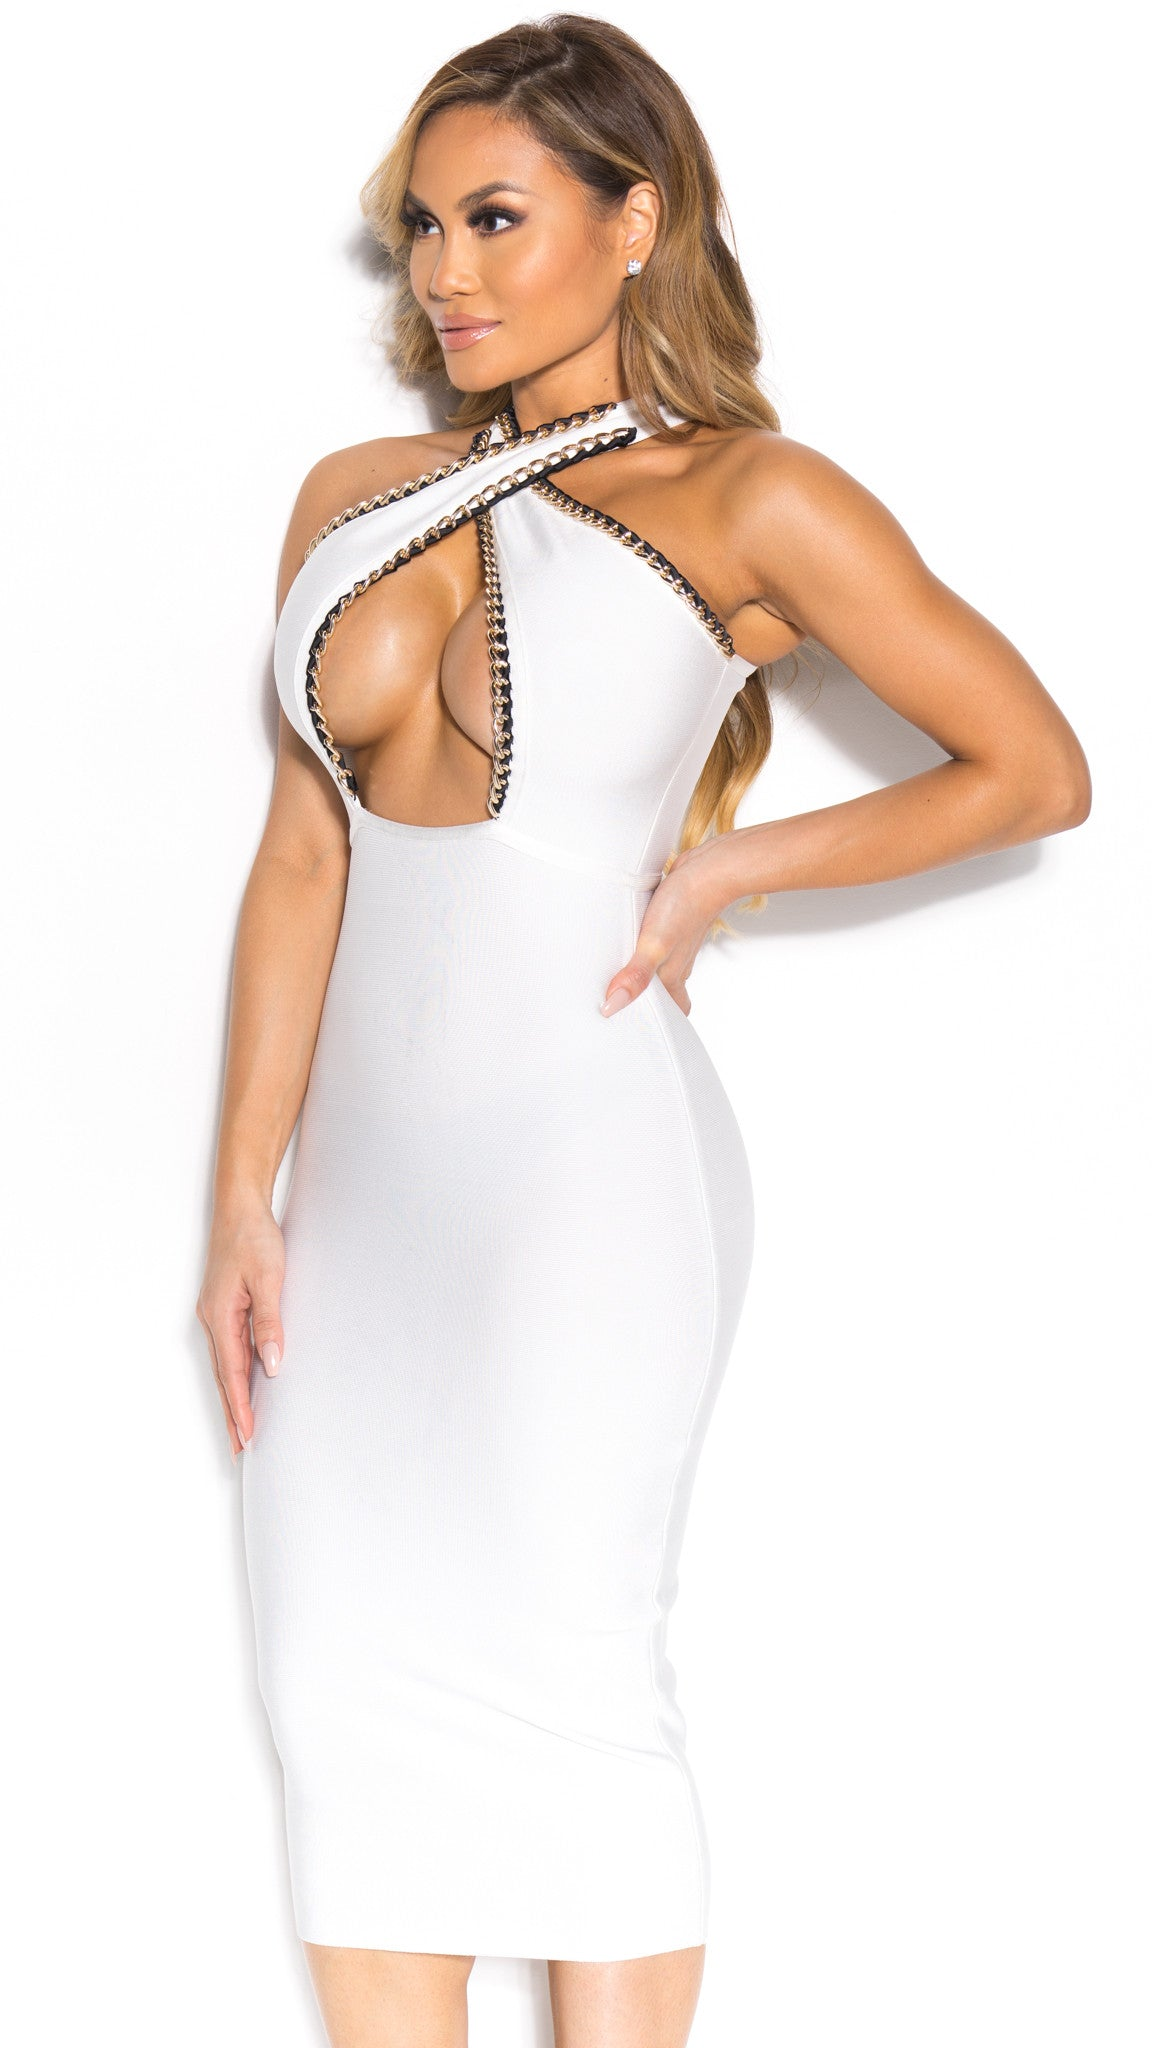 TALIA BANDAGE DRESS IN WHITE WITH GOLD